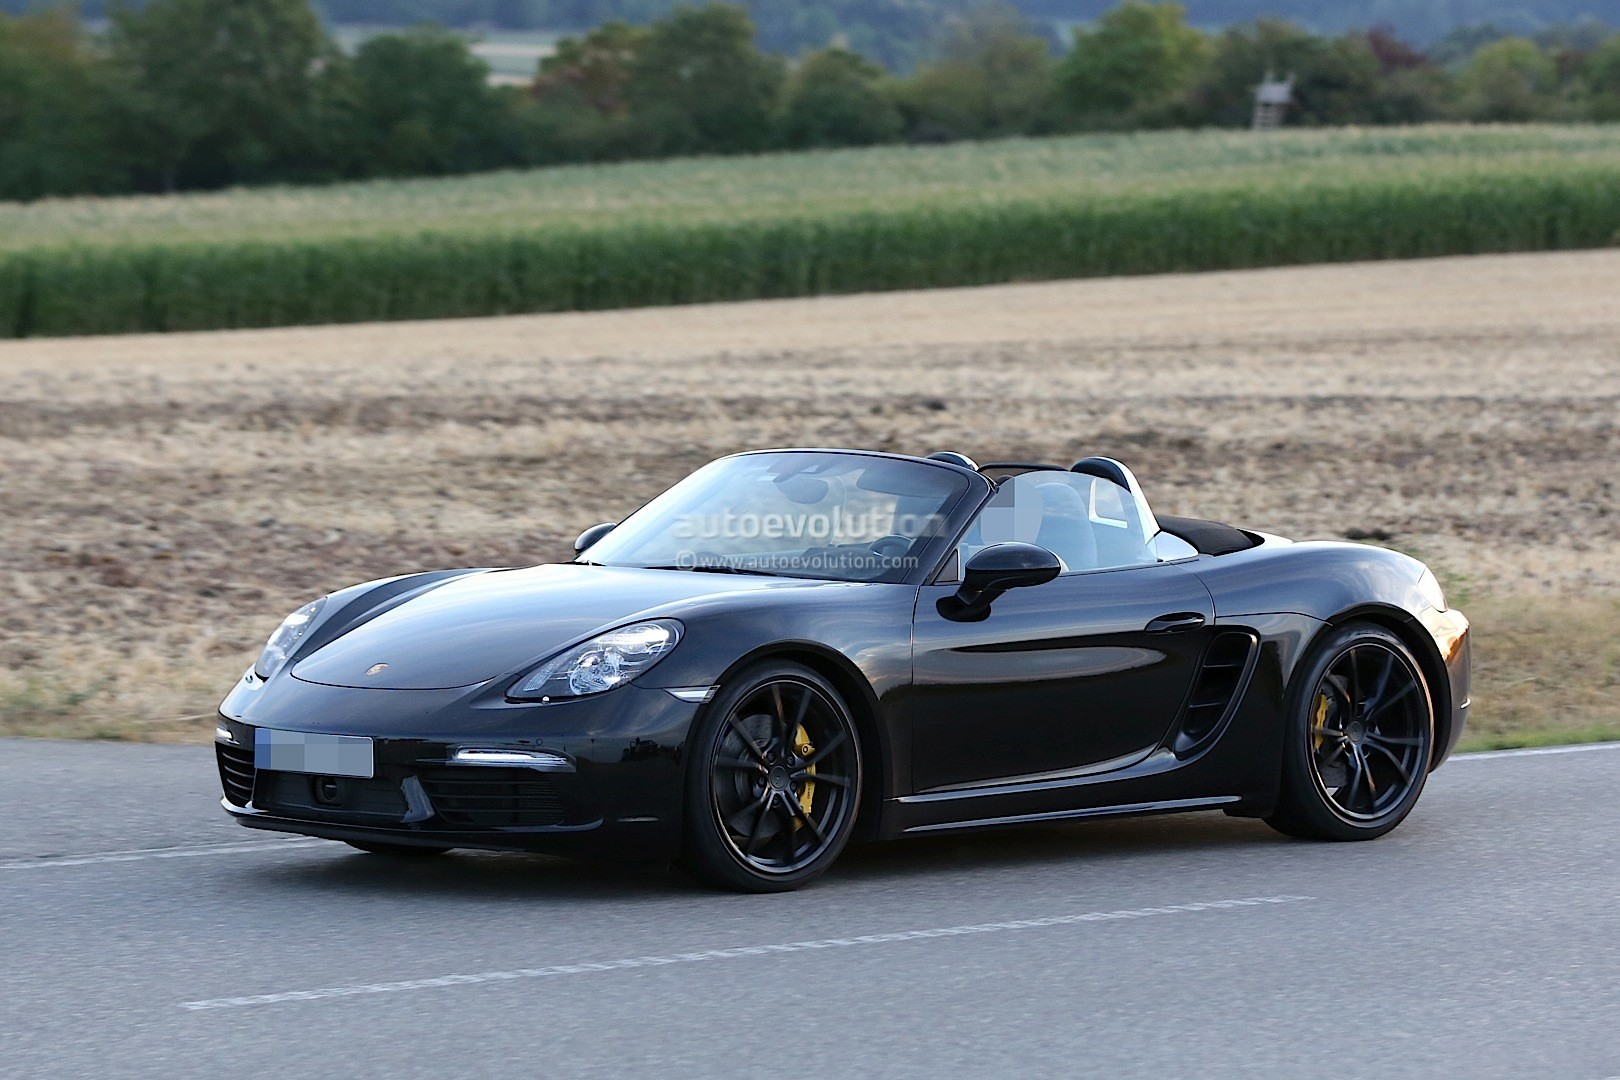 2017 Porsche Boxster Facelift Revealed In Latest Spyshots